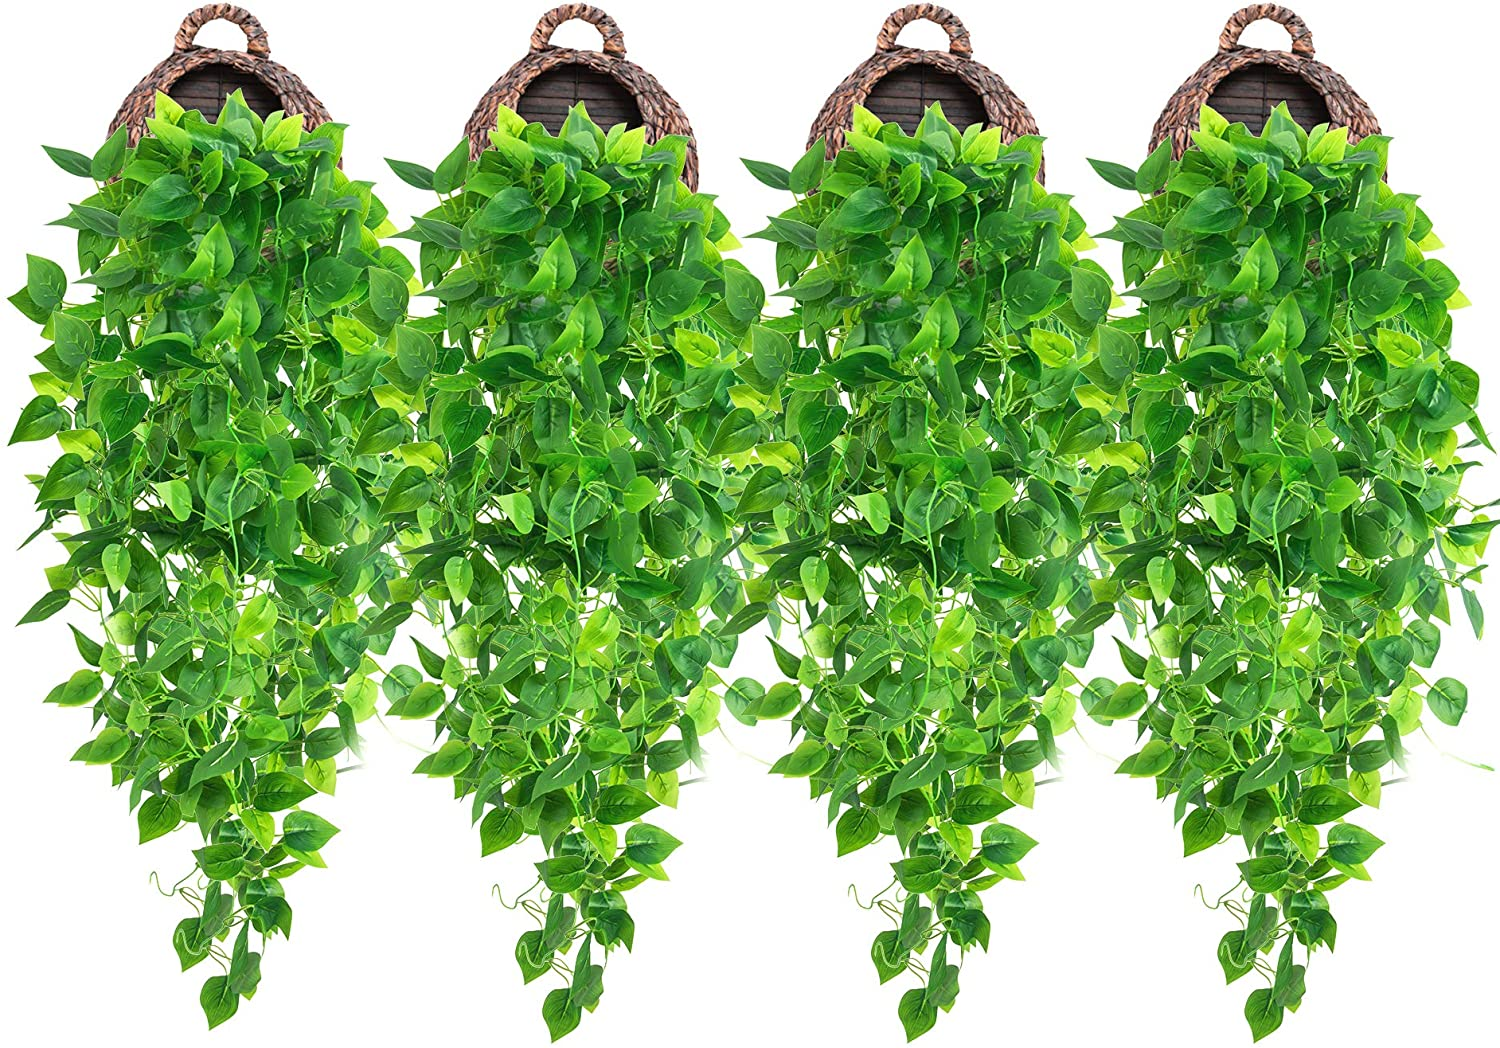 4 Pcs Artificial Hanging Plants 3.6ft Fake Ivy Vines, Fake Ivy Leaves Hanging Plant Wall Plants for Wall Decor Home Garden Wedding Party Indoor Outdoor Decoration (Basket Not Included)